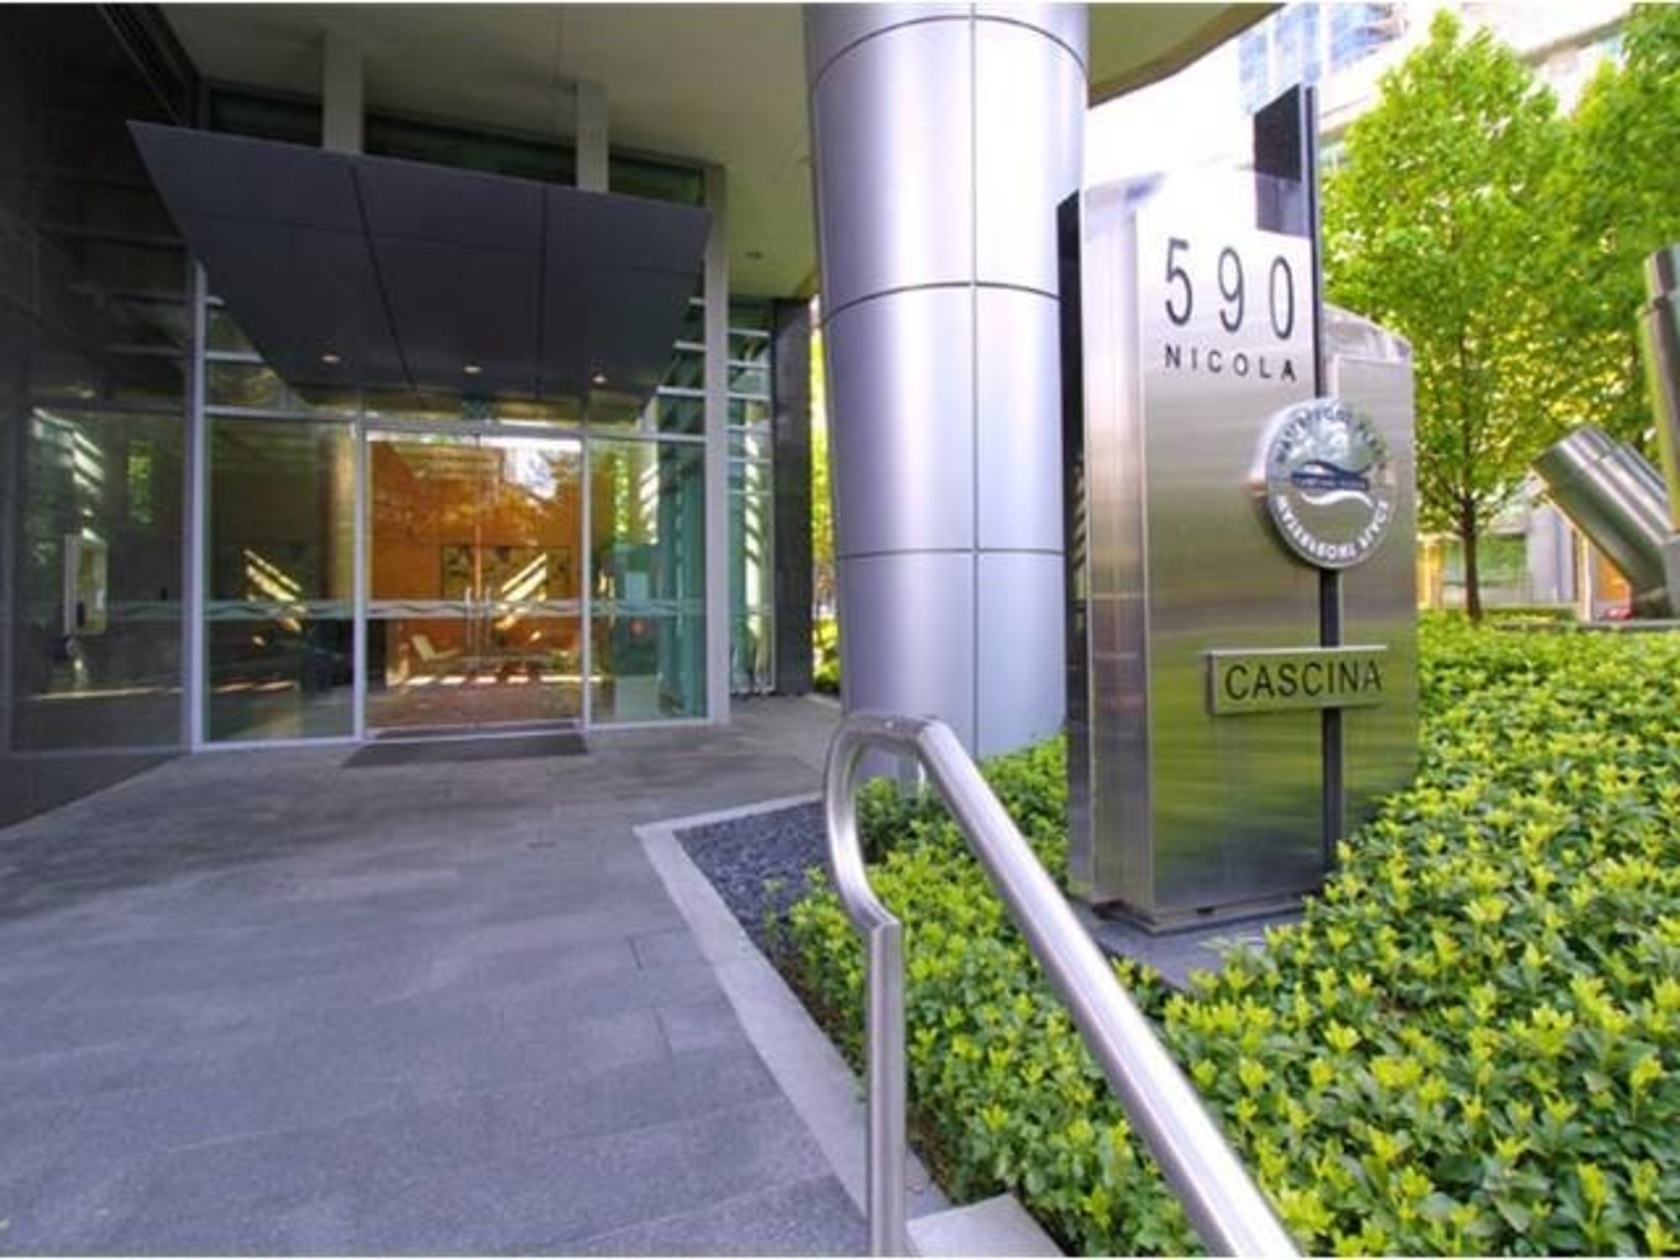 262358064 at 1203 - 590 Nicola, Coal Harbour Waterfront, Vancouver West